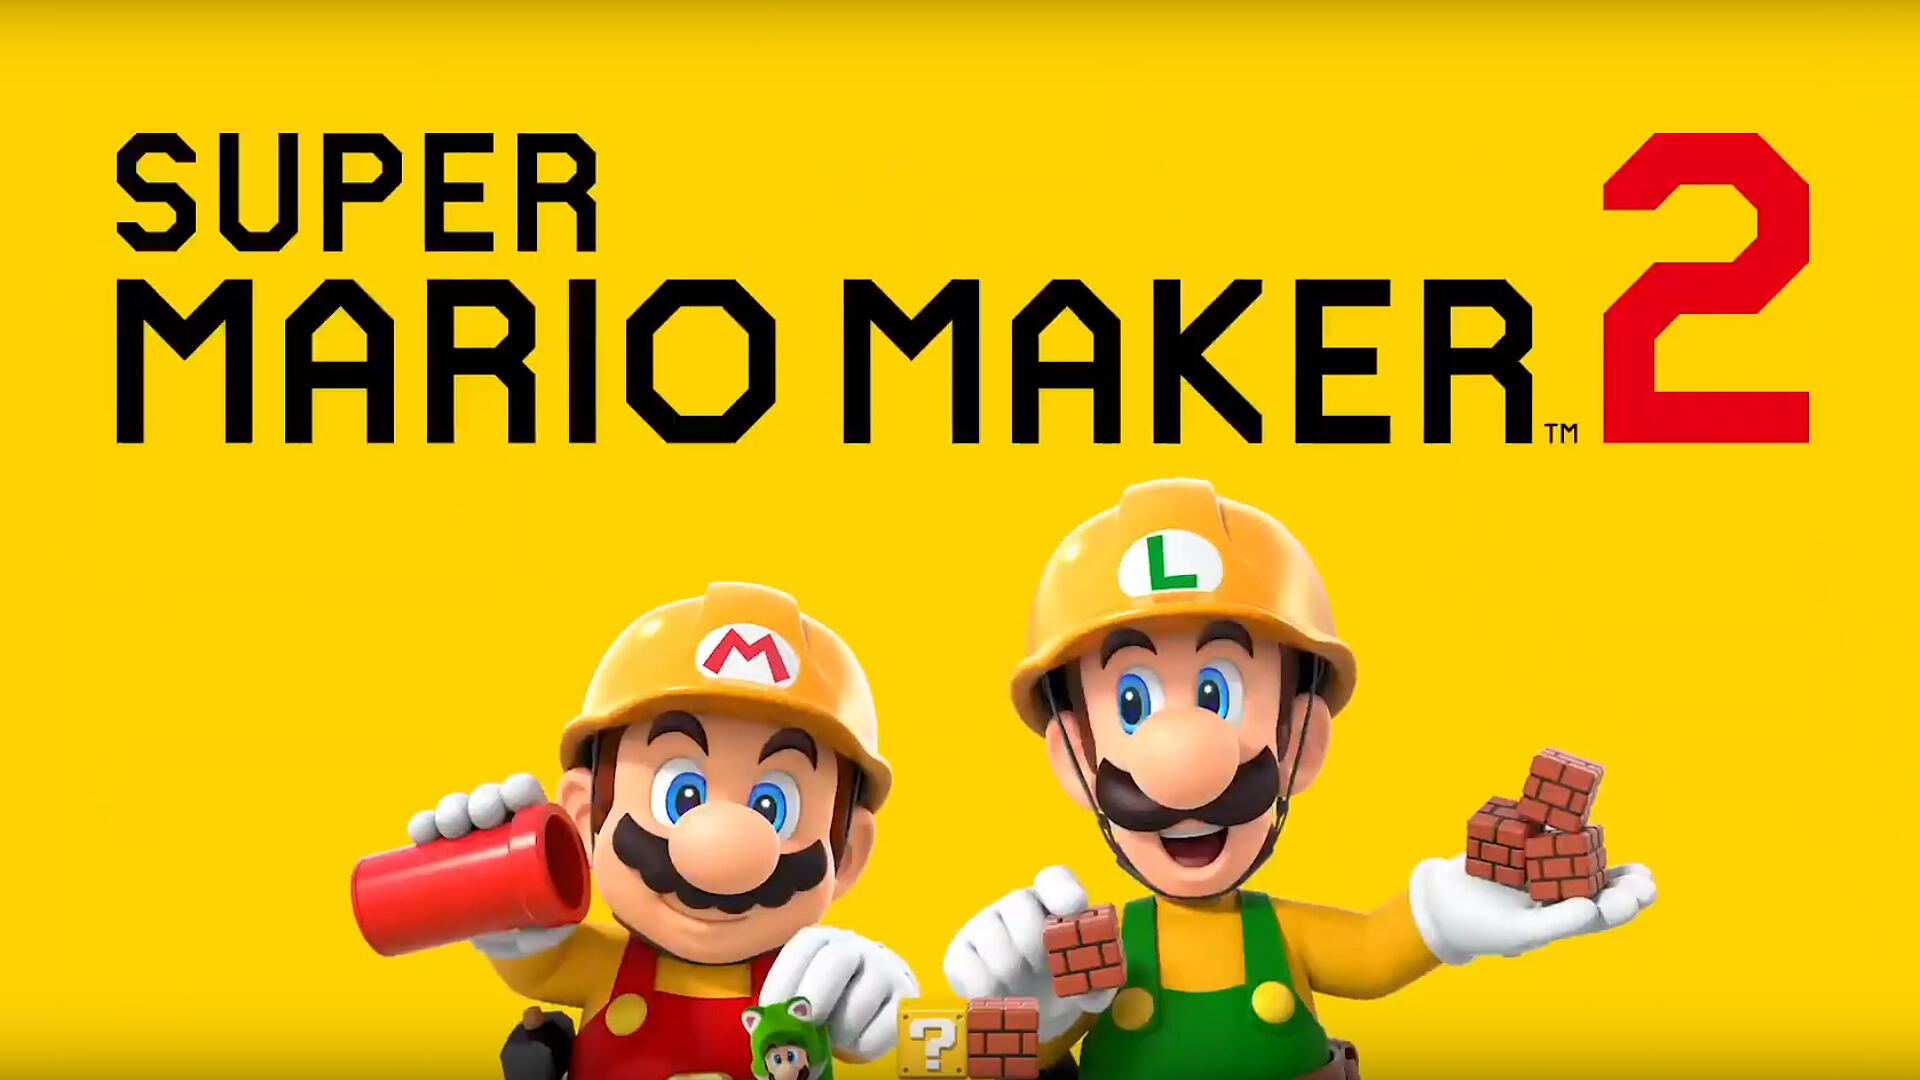 Super Mario Maker 2 Announced for Switch This Summer With a New Theme